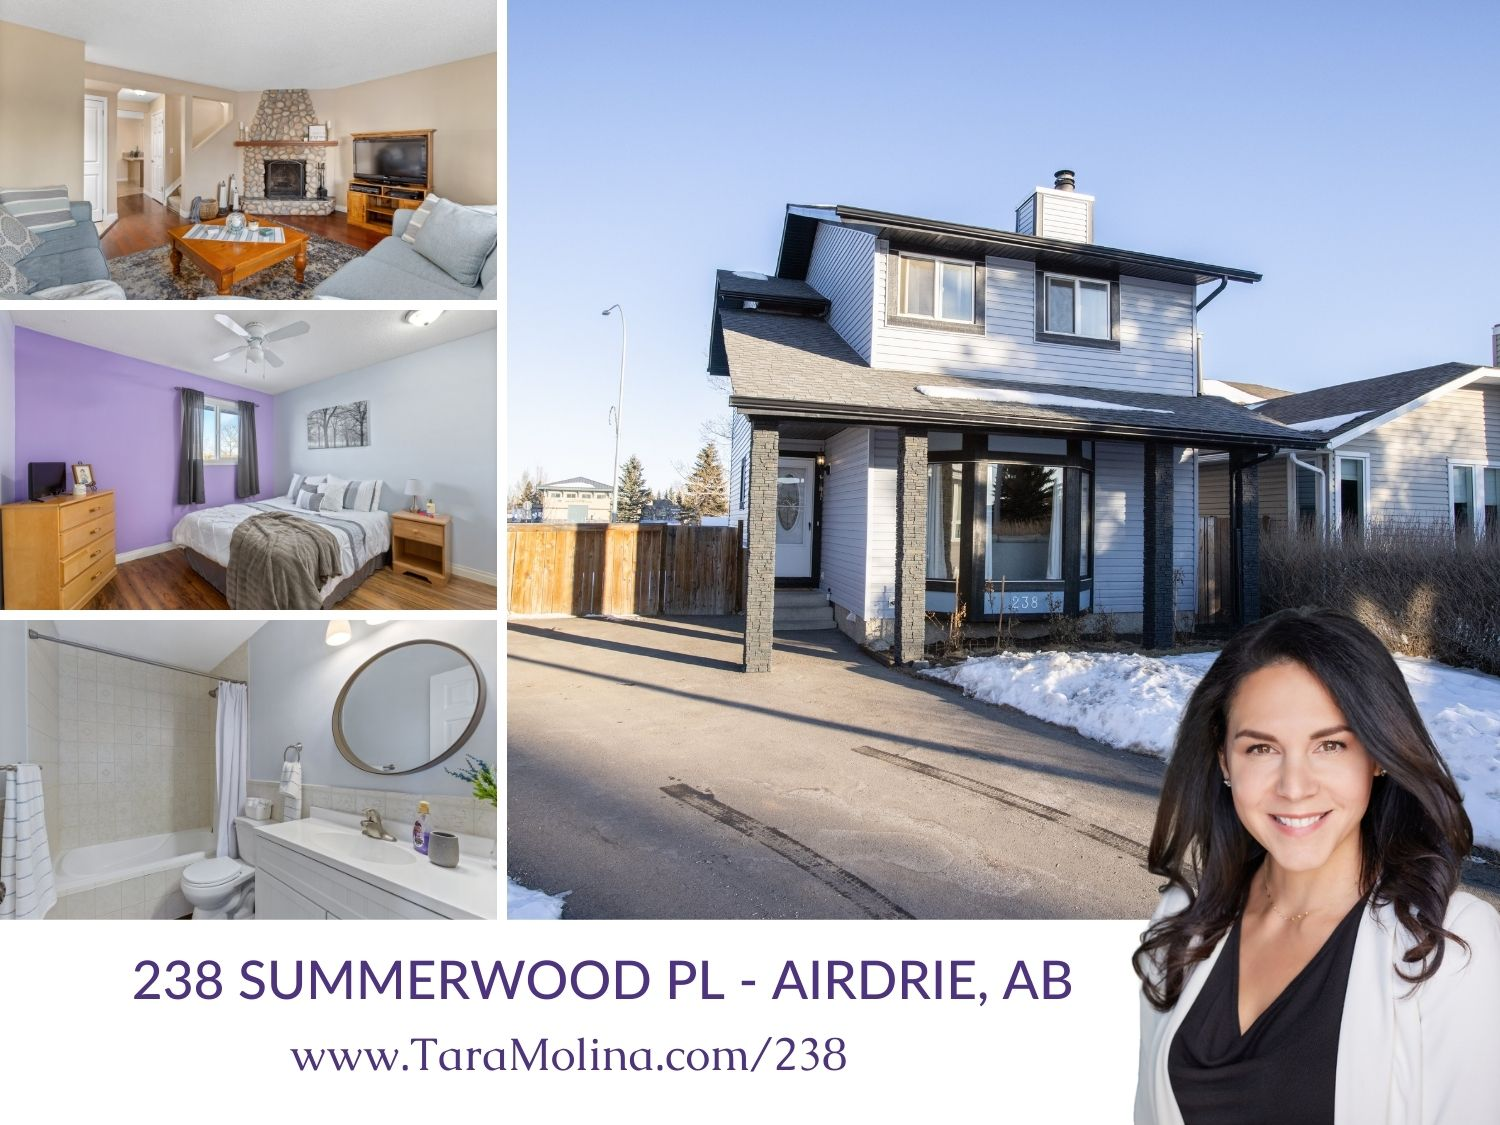 238 Summerwood Pl in Airdrie